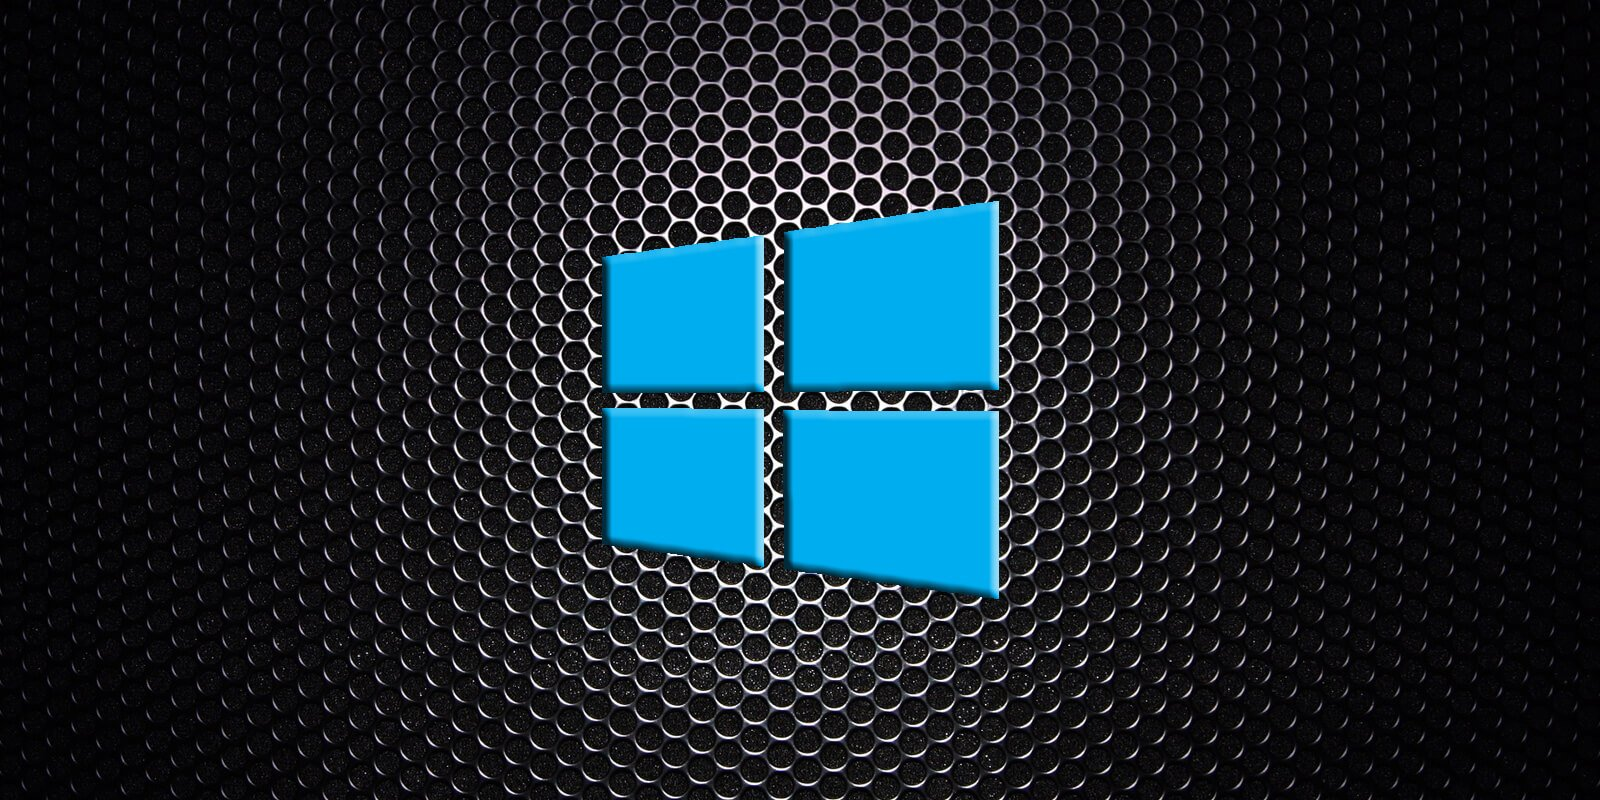 Windows 10: Upcoming Driver Changes May Break Plug-and-Play